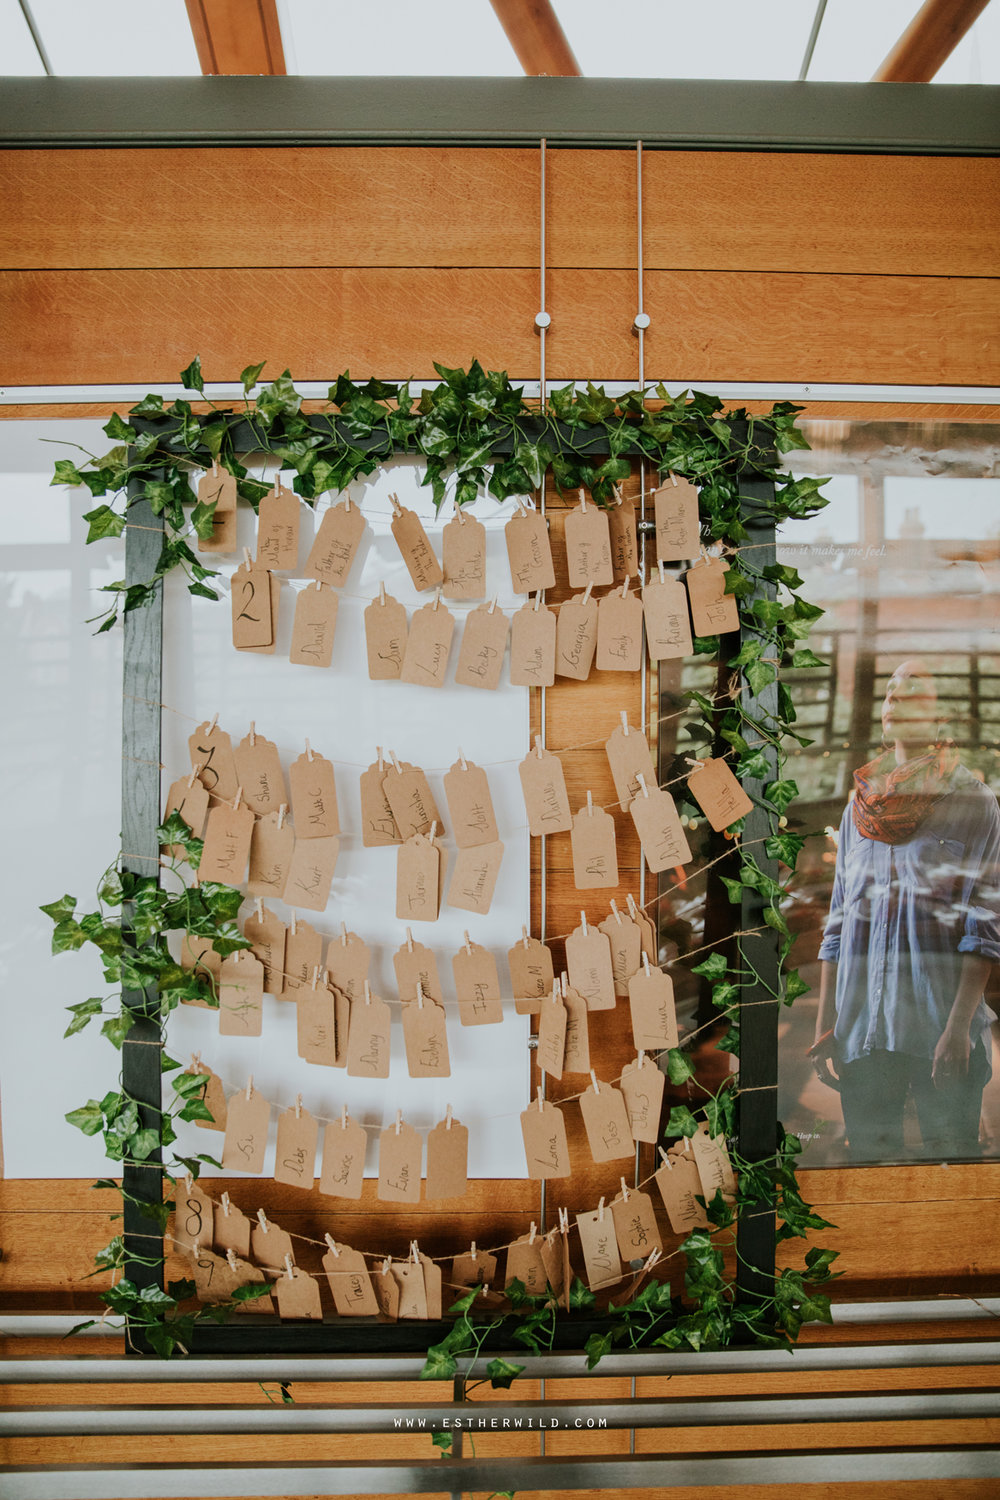 Norwich_Castle_Arcade_Grosvenor_Chip_Birdcage_Cathedral_Cloisters_Refectory_Wedding_Photography_Esther_Wild_Photographer_Norfolk_Kings_Lynn_3R8A2188.jpg